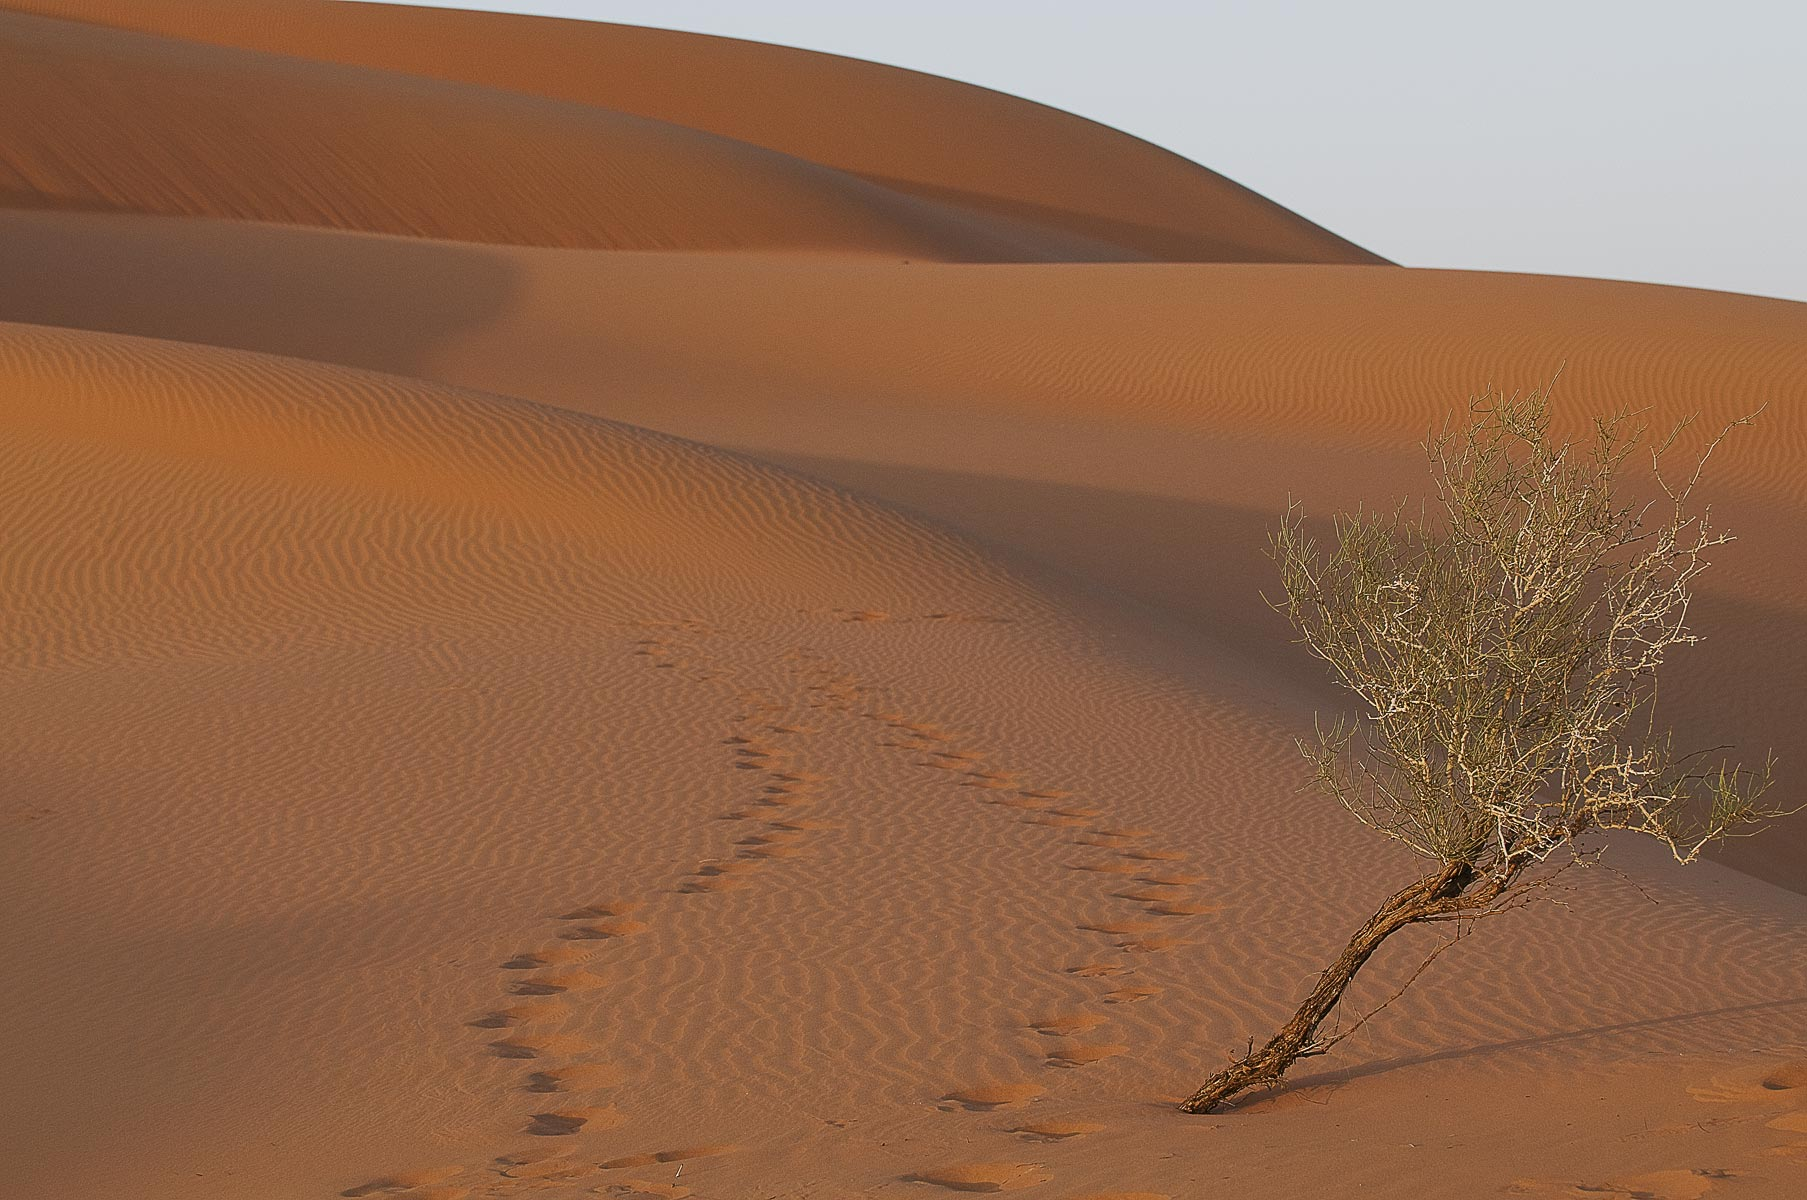 4-Saudi-Arabia-Empty-Quarter-Dunes-0771new